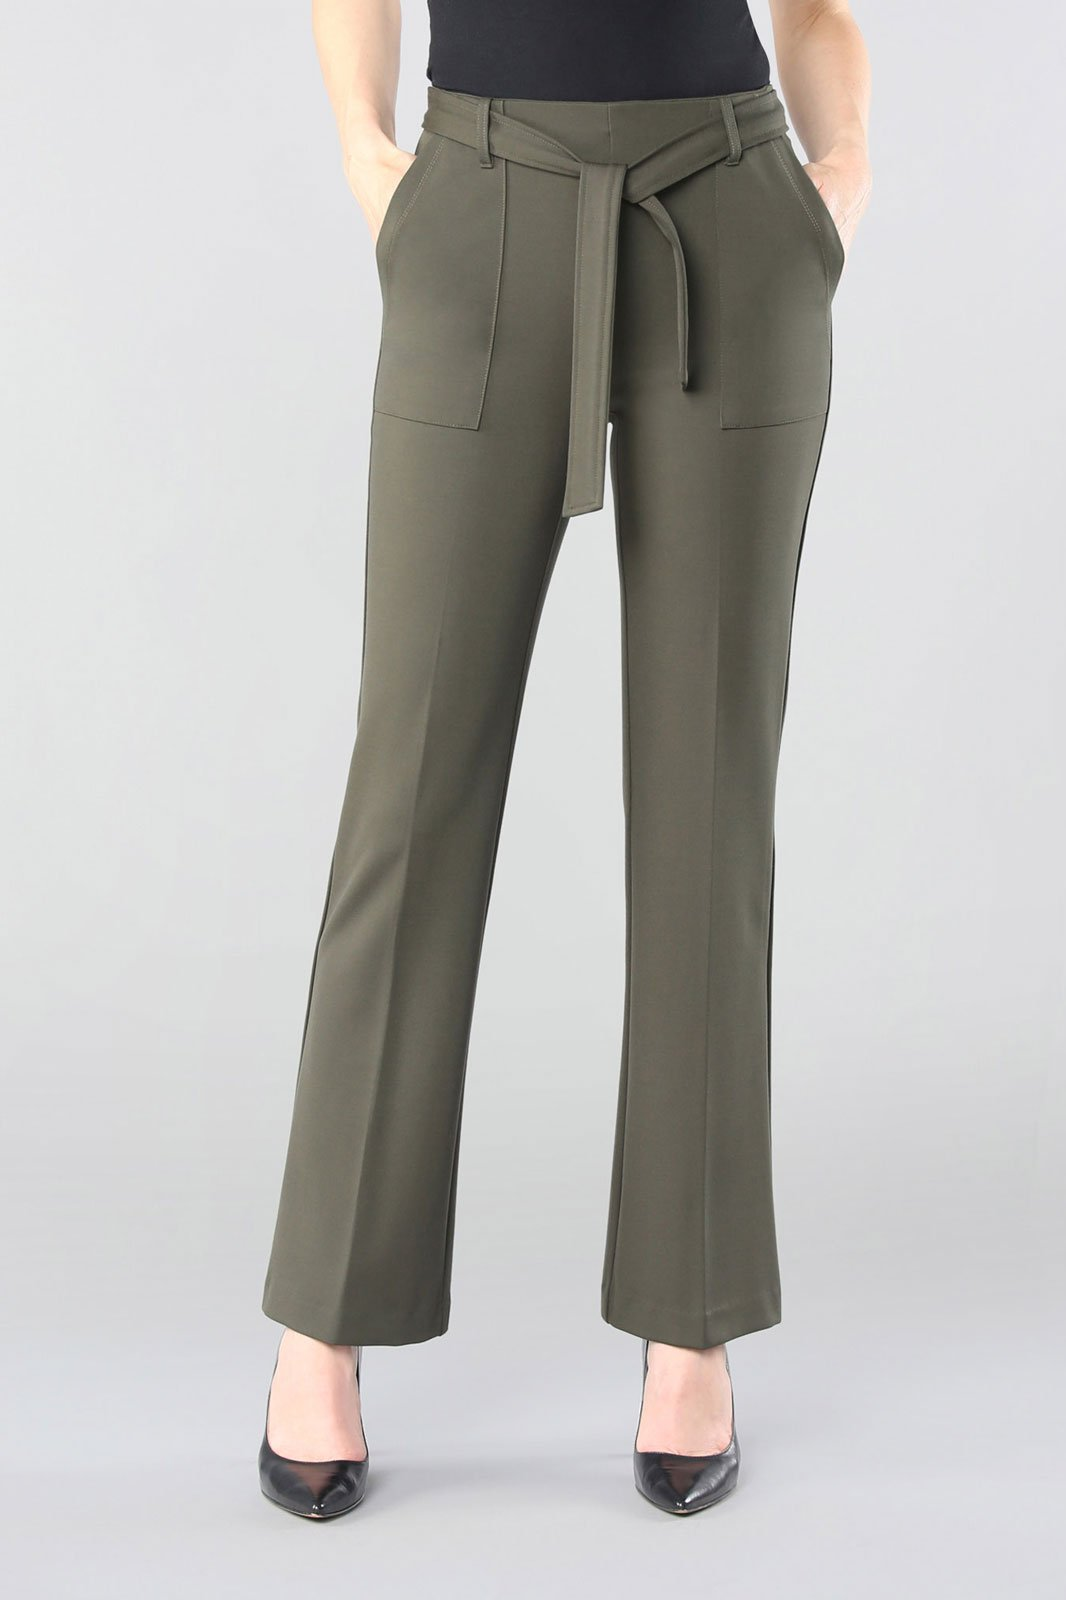 Lisette L. Mini Boot Cut Pant Style 25654 Hollywood, 2 Colors Available, 31